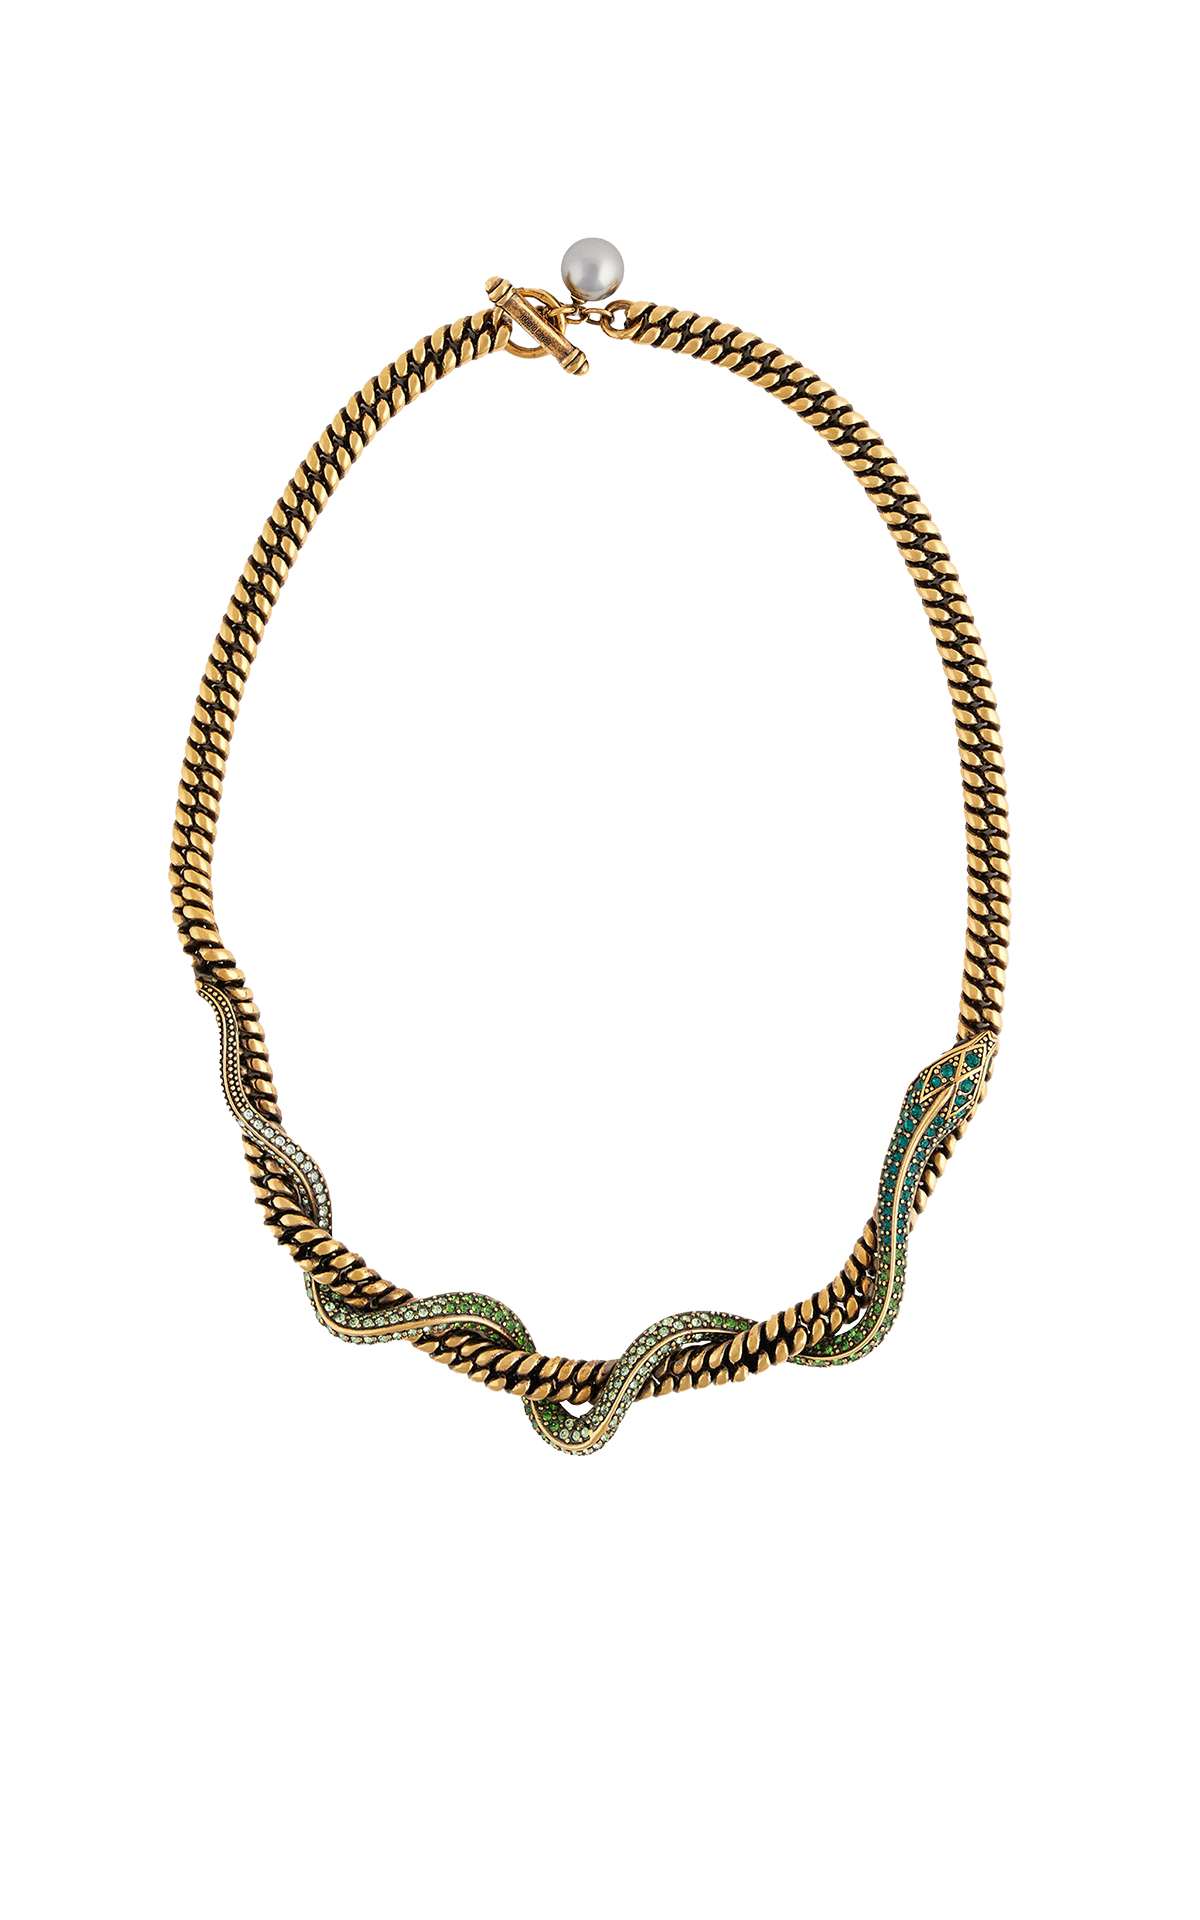 Golden snake necklace Roberto Cavalli